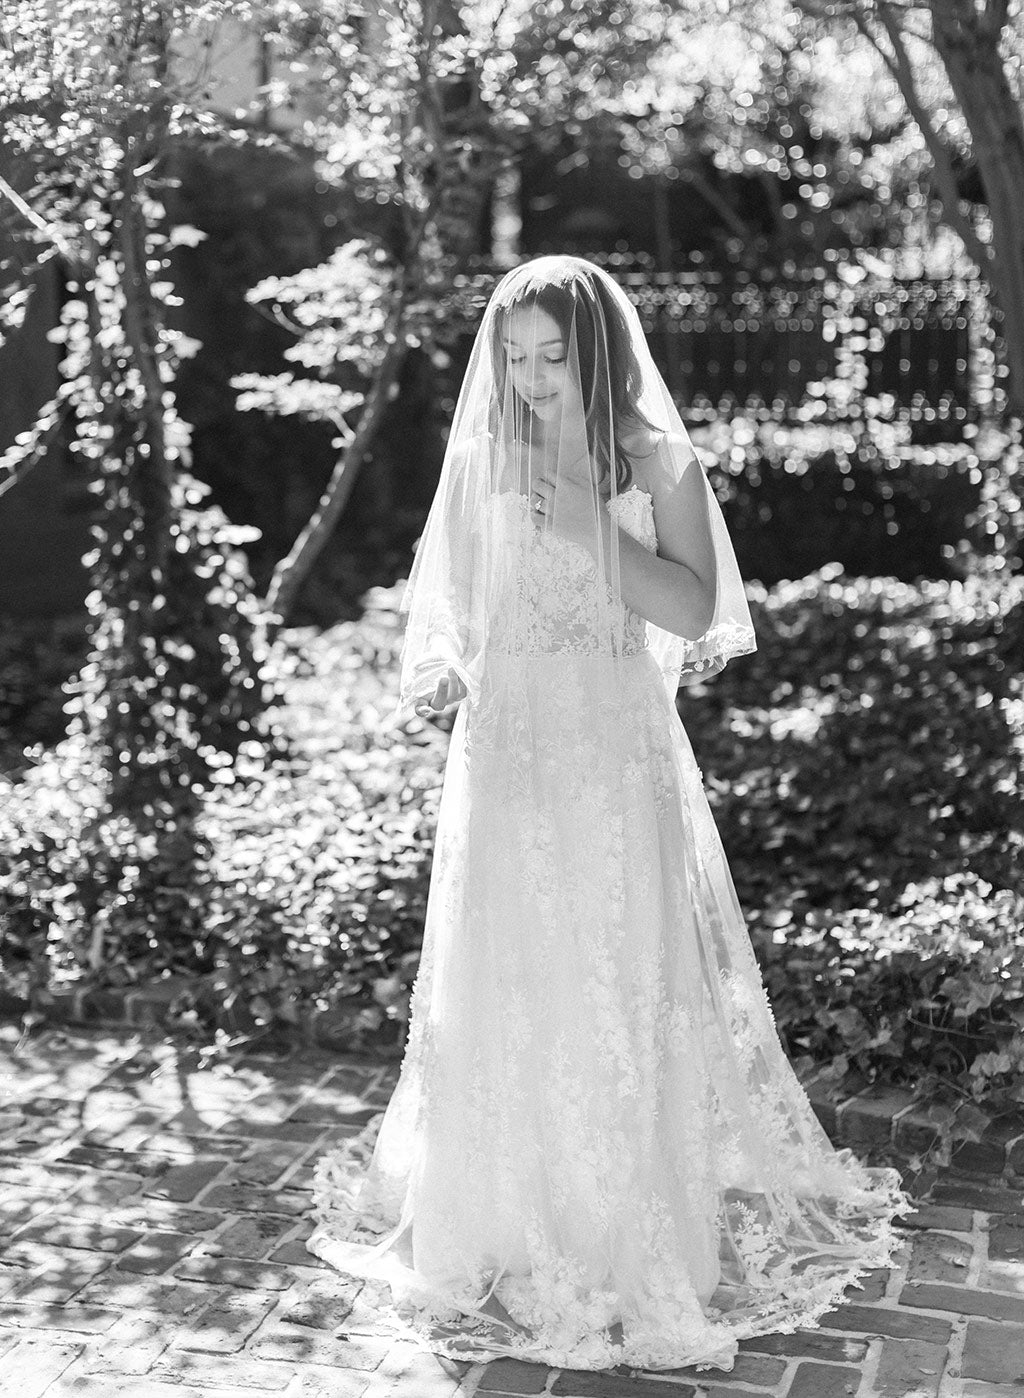 Bride in Lace Wedding Dress by Claire Pettibone